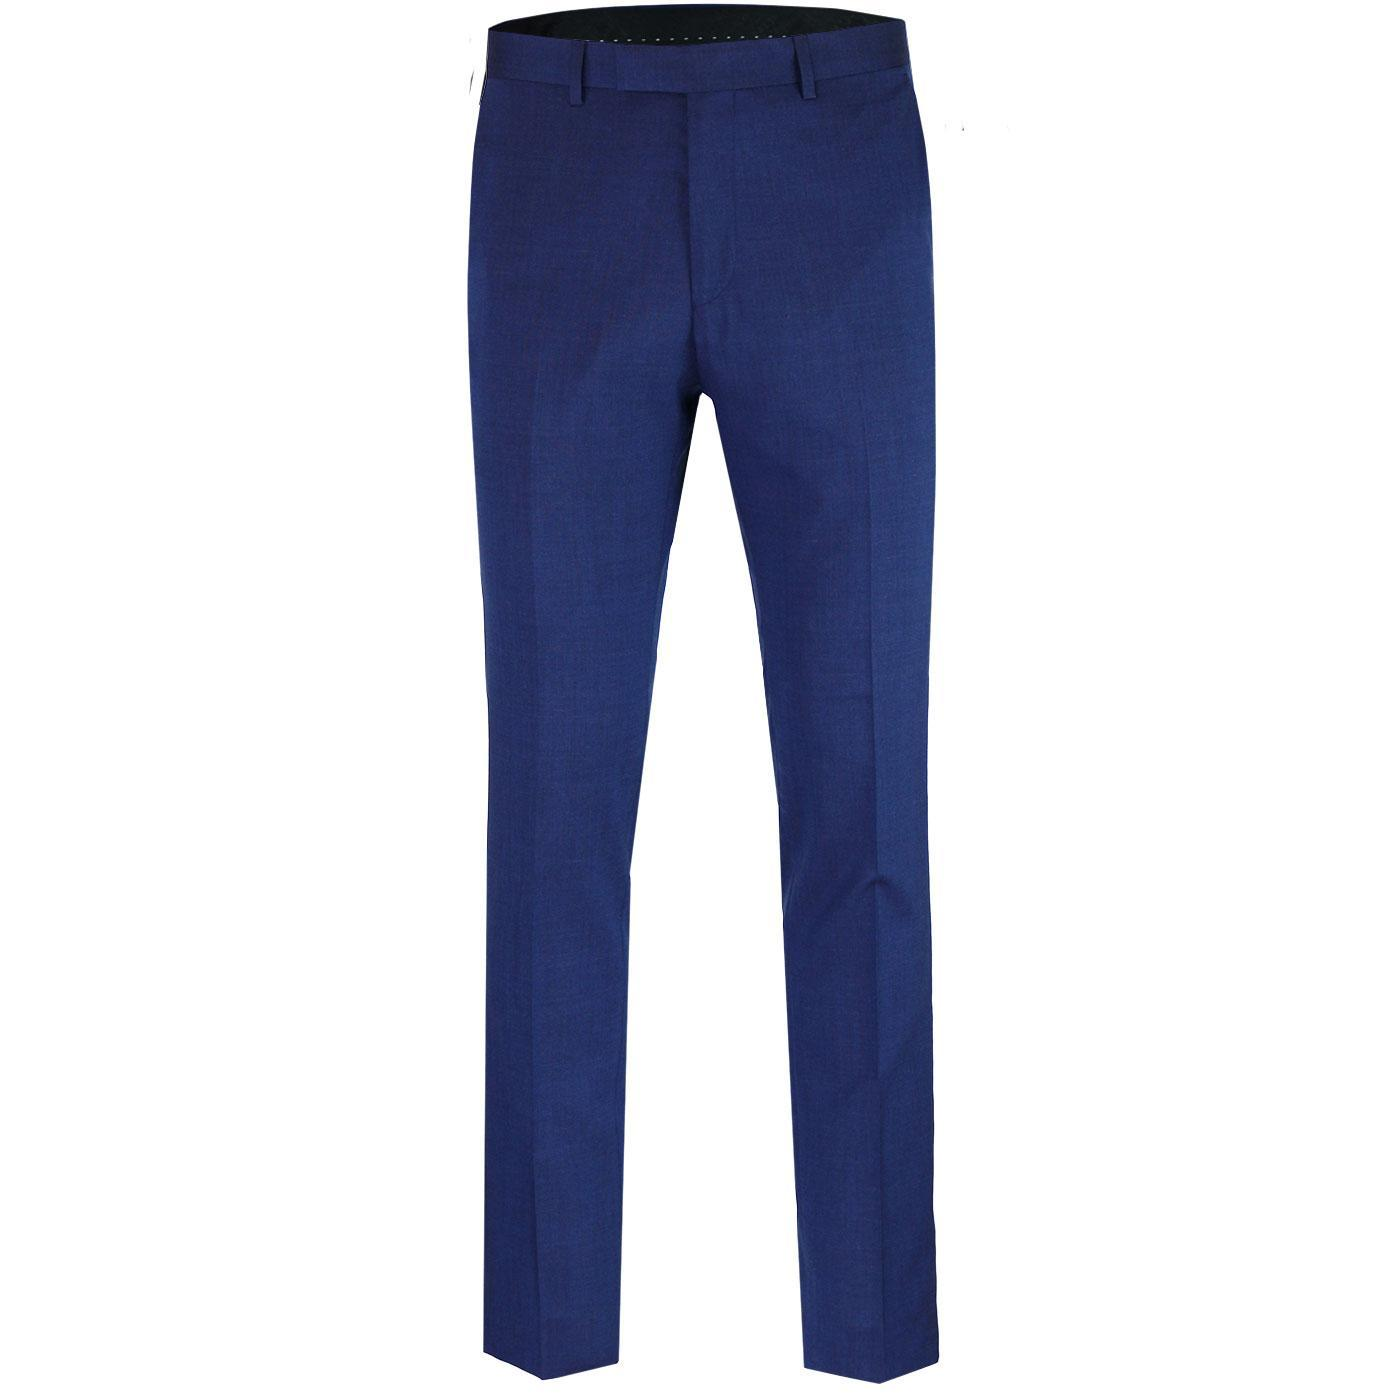 BEN SHERMAN Tailoring Mod Tonic Suit Trousers BLUE